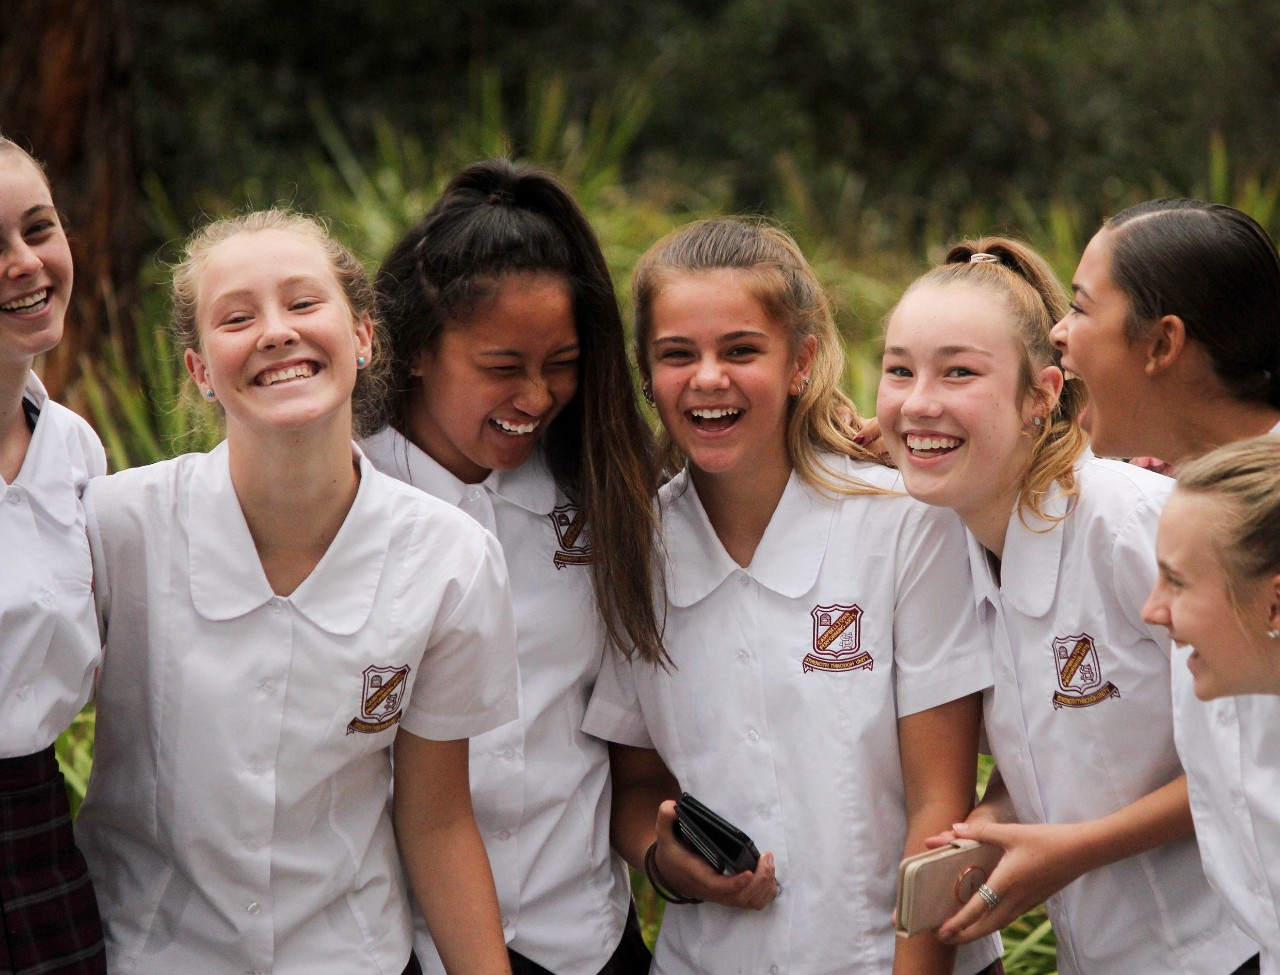 group of girls laughing together